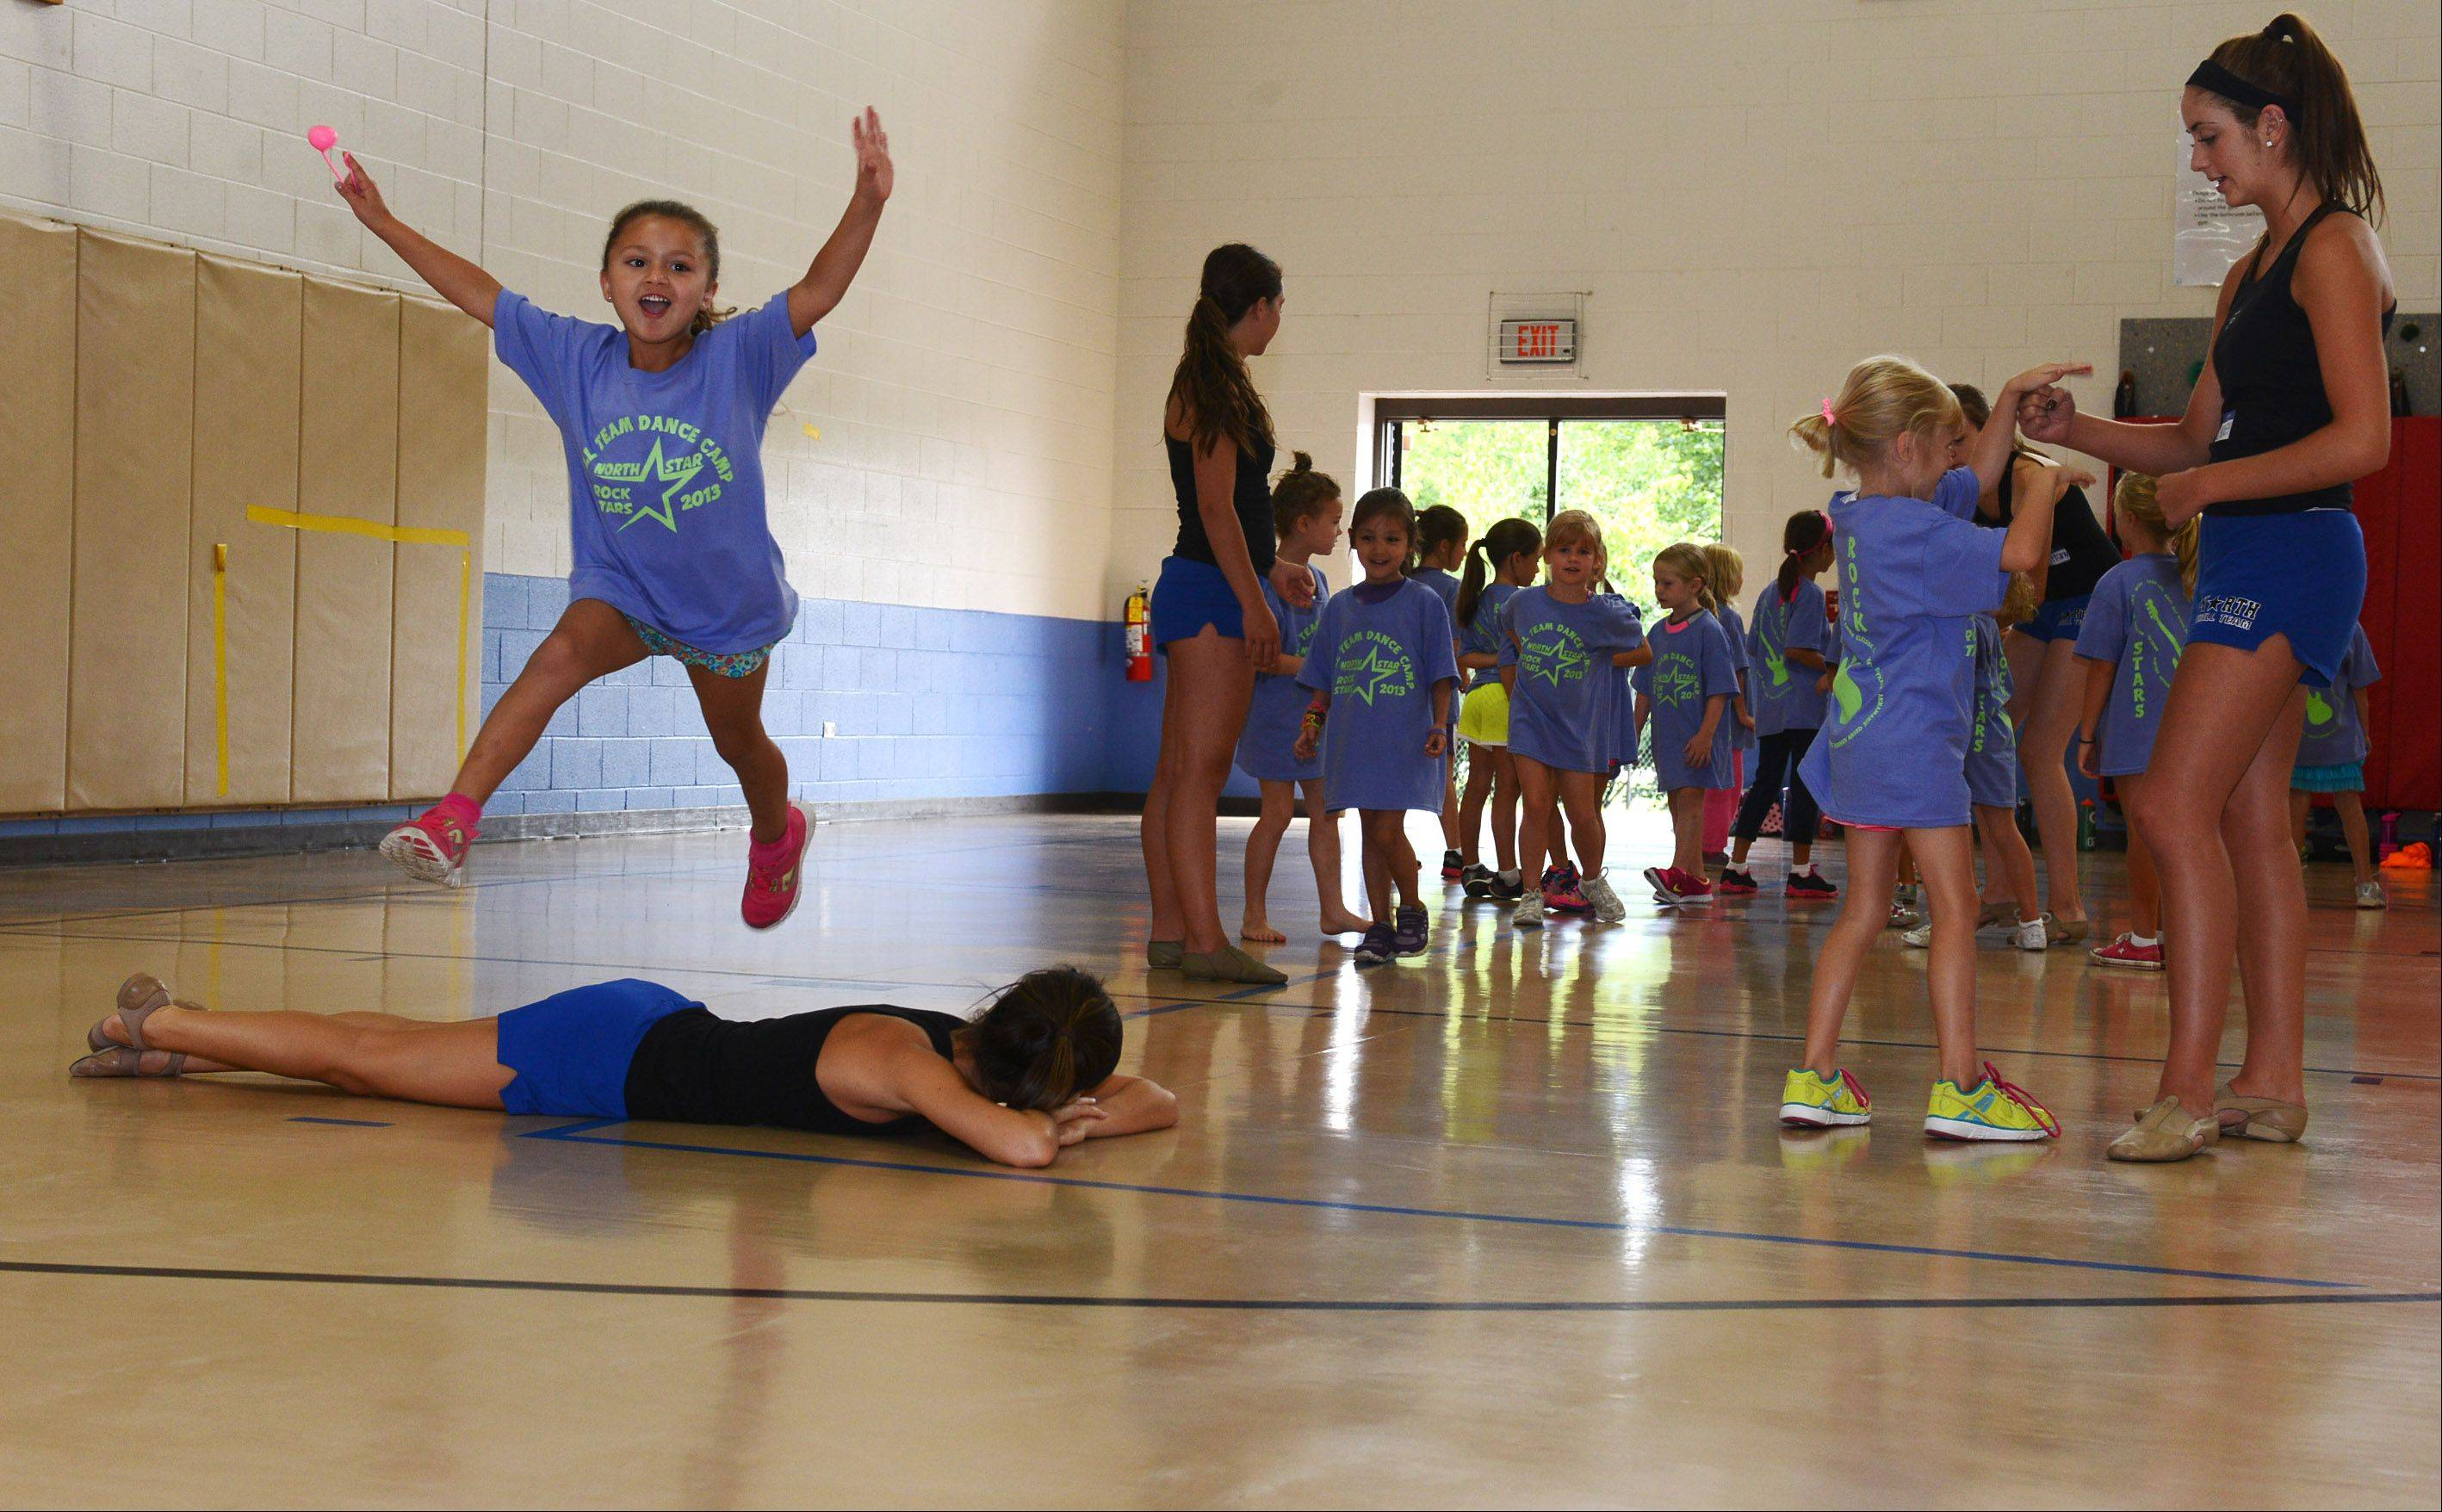 Ava Karoumi, 6, takes a flying leap over one of the North Star Drill Team members, while the rest of her classmates wait for their turn Monday during the 14th annual North Star Dance Clinic at Bell-Graham Elementary School in St. Charles. Girls learned sideline and dance routines, which they will perform at the North Star Football Black and Blue Scrimmage on August 23.